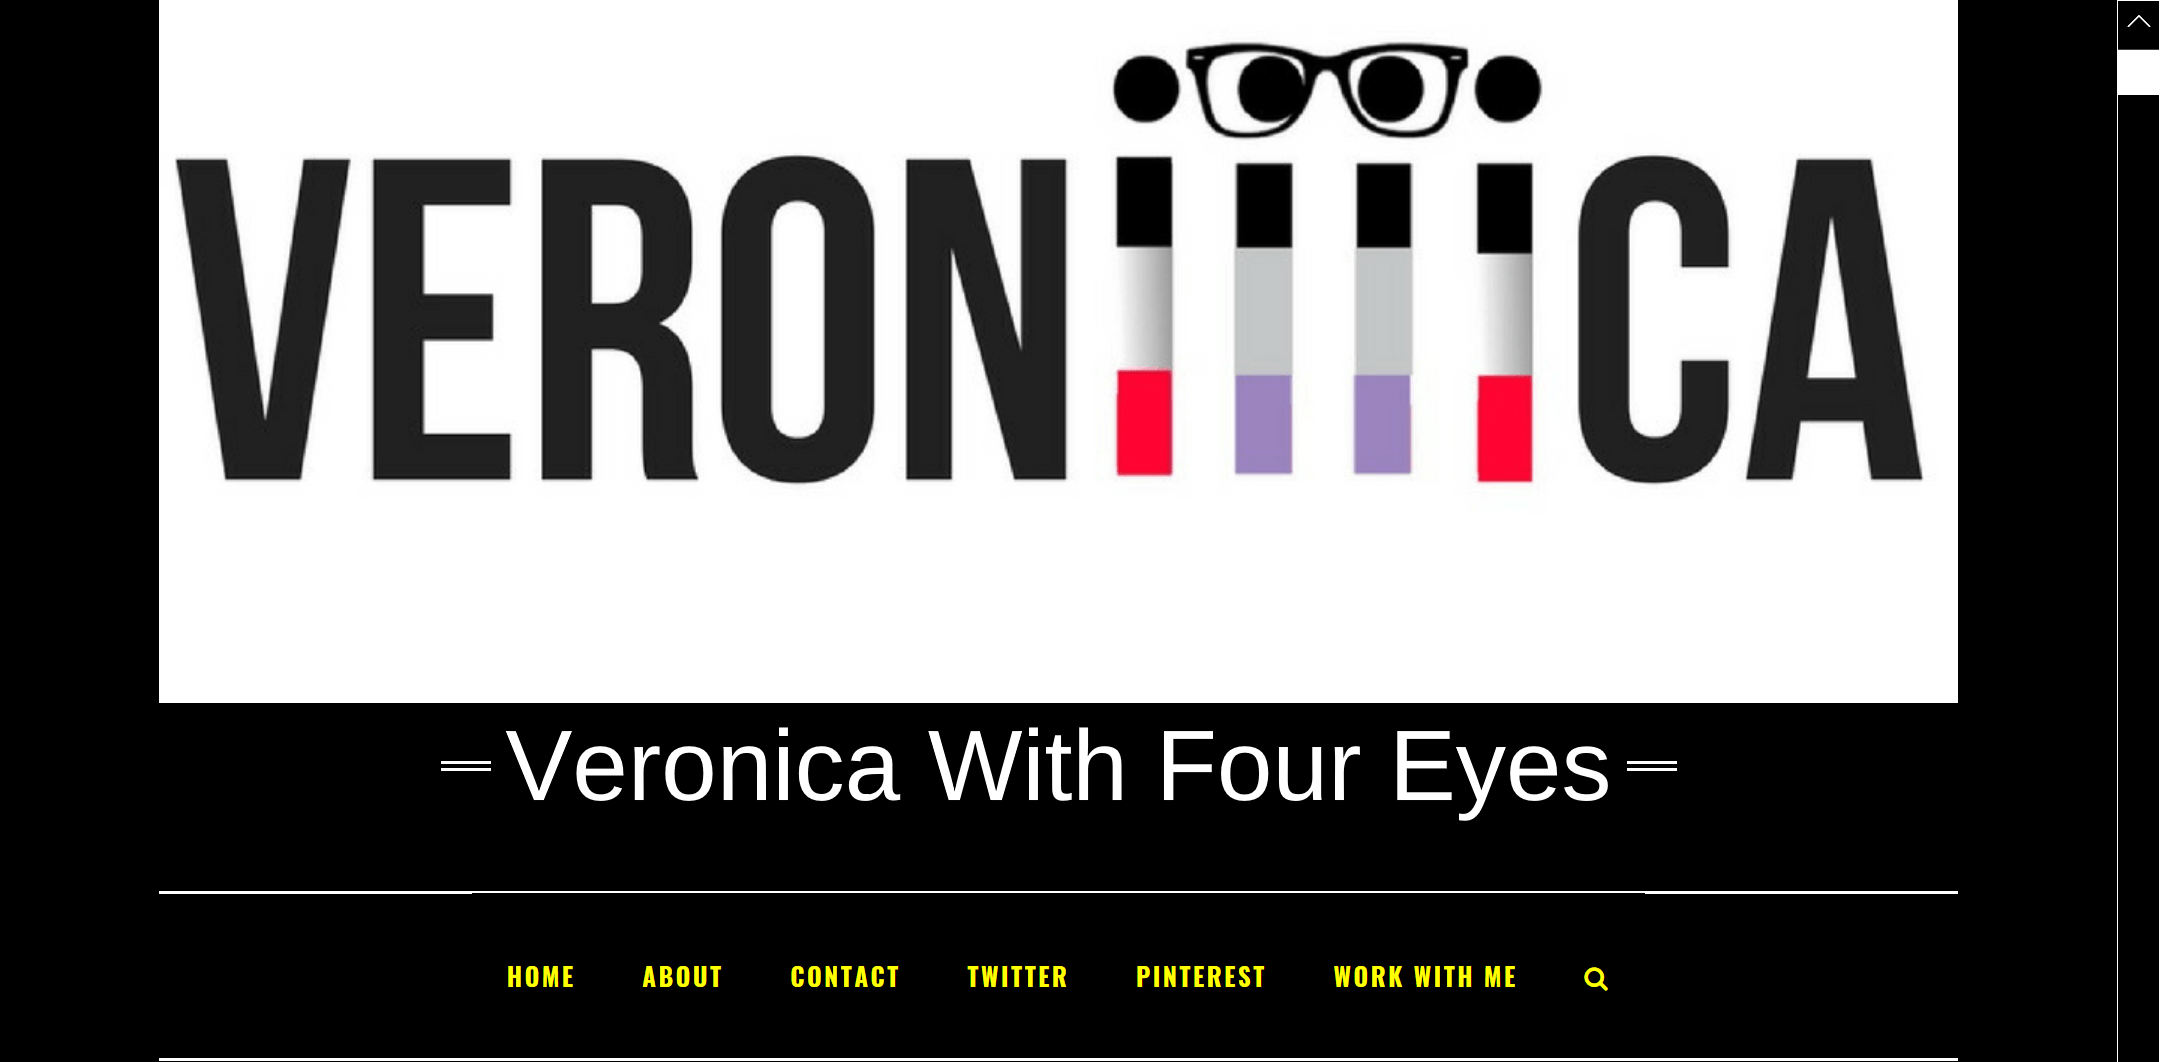 Veronica with four eyes logo in full color on a black background, with white text spelling out the website name and yellow text showing the different web pages